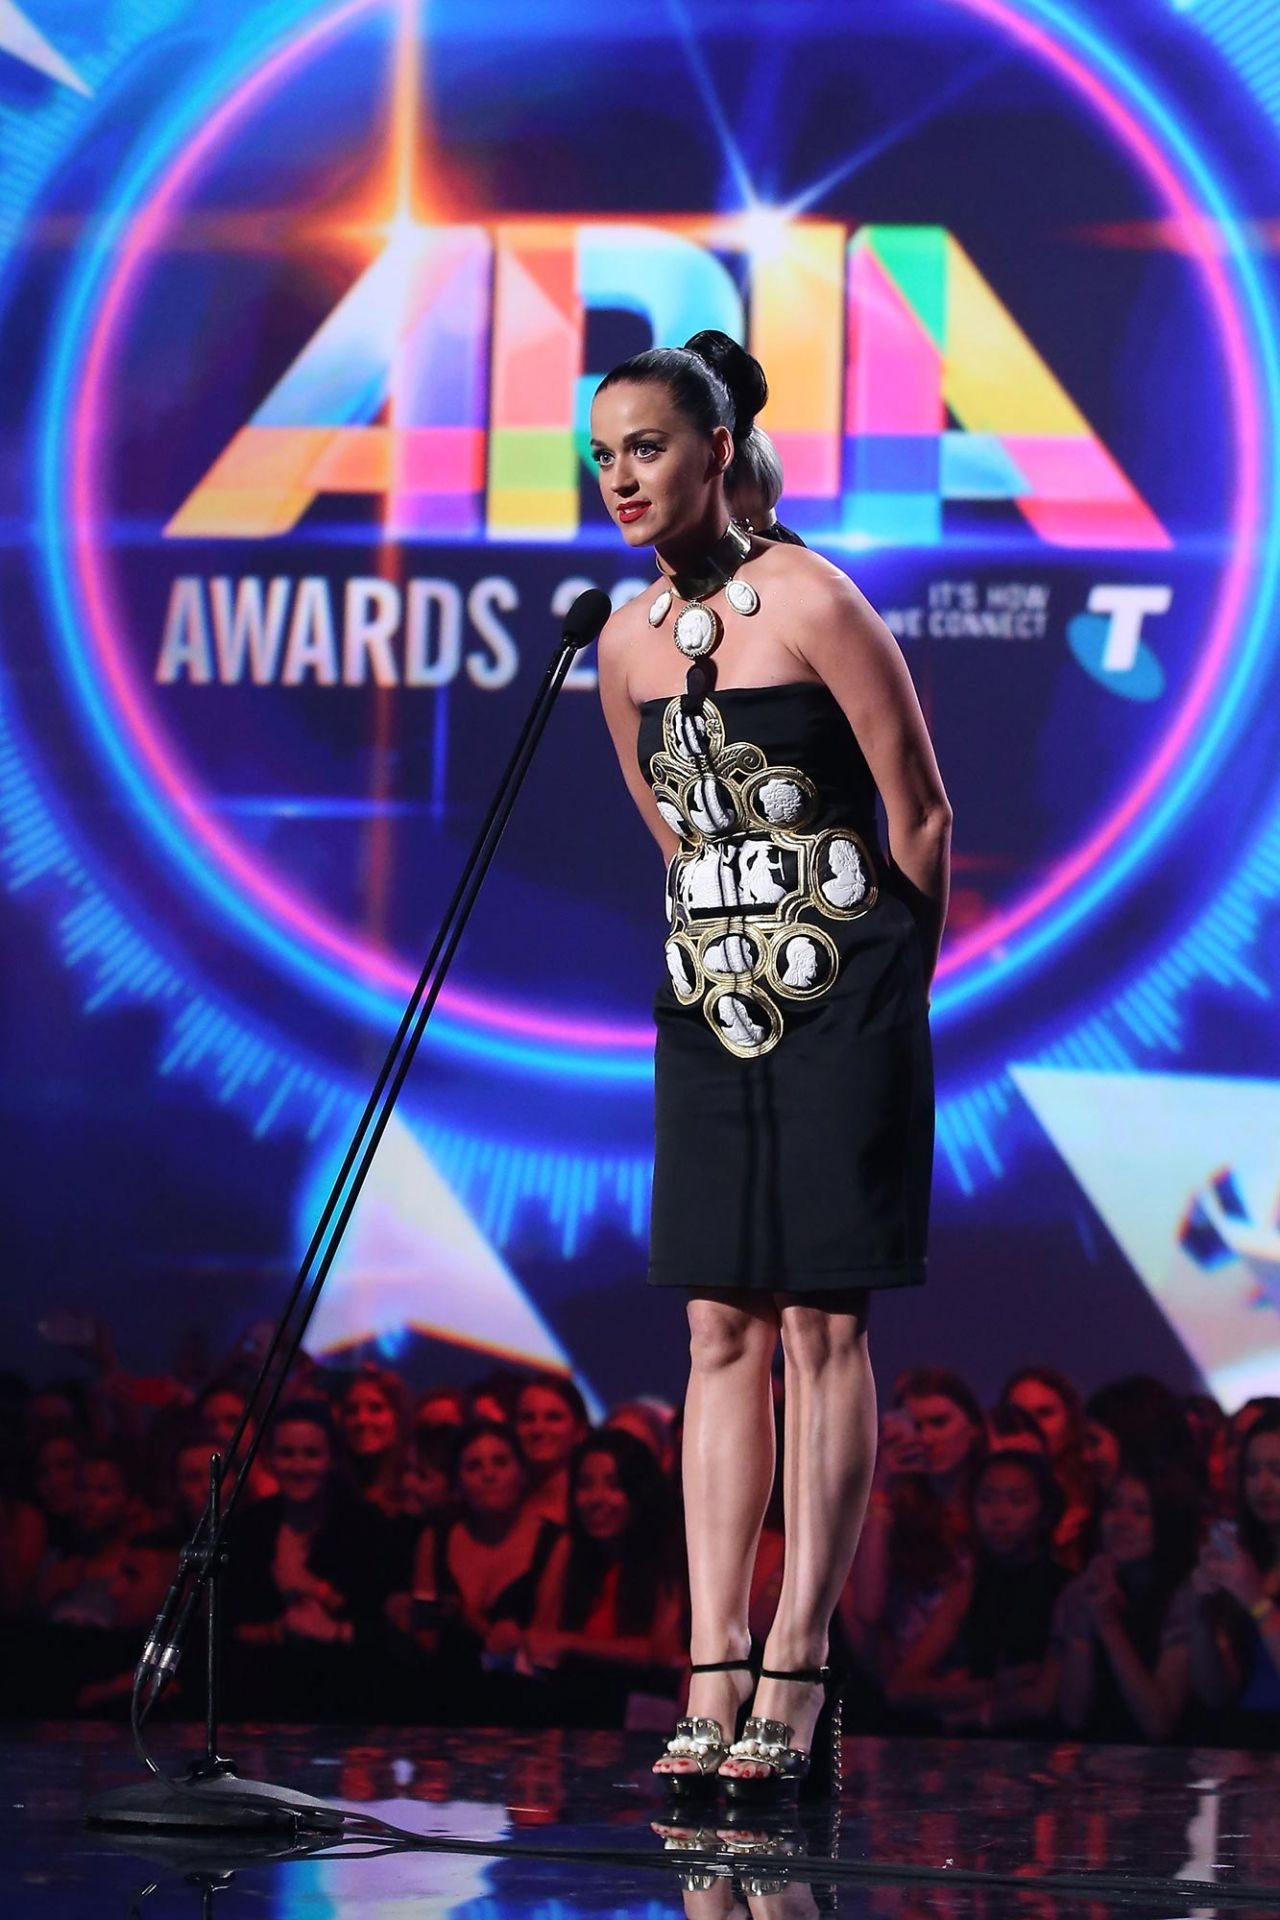 katy-perry-aria-awards-2014-in-sydney-part-ii-_19